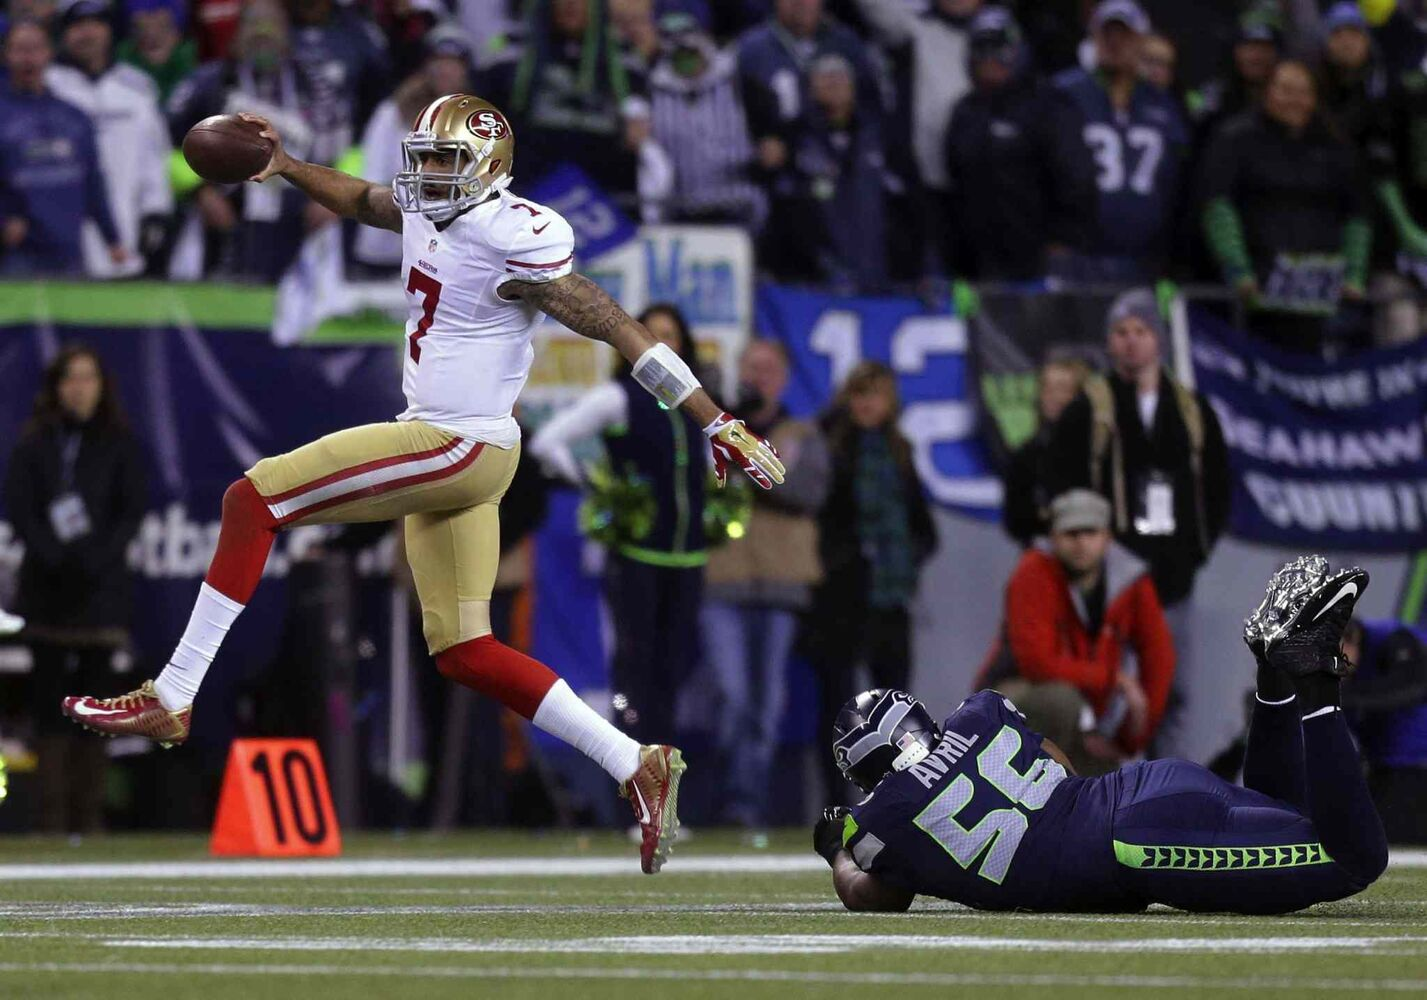 49ers QB Colin Kaepernick evades Seahawks defensive end Cliff Avril.   (Bettina Hansen / Tribune Media MCT)